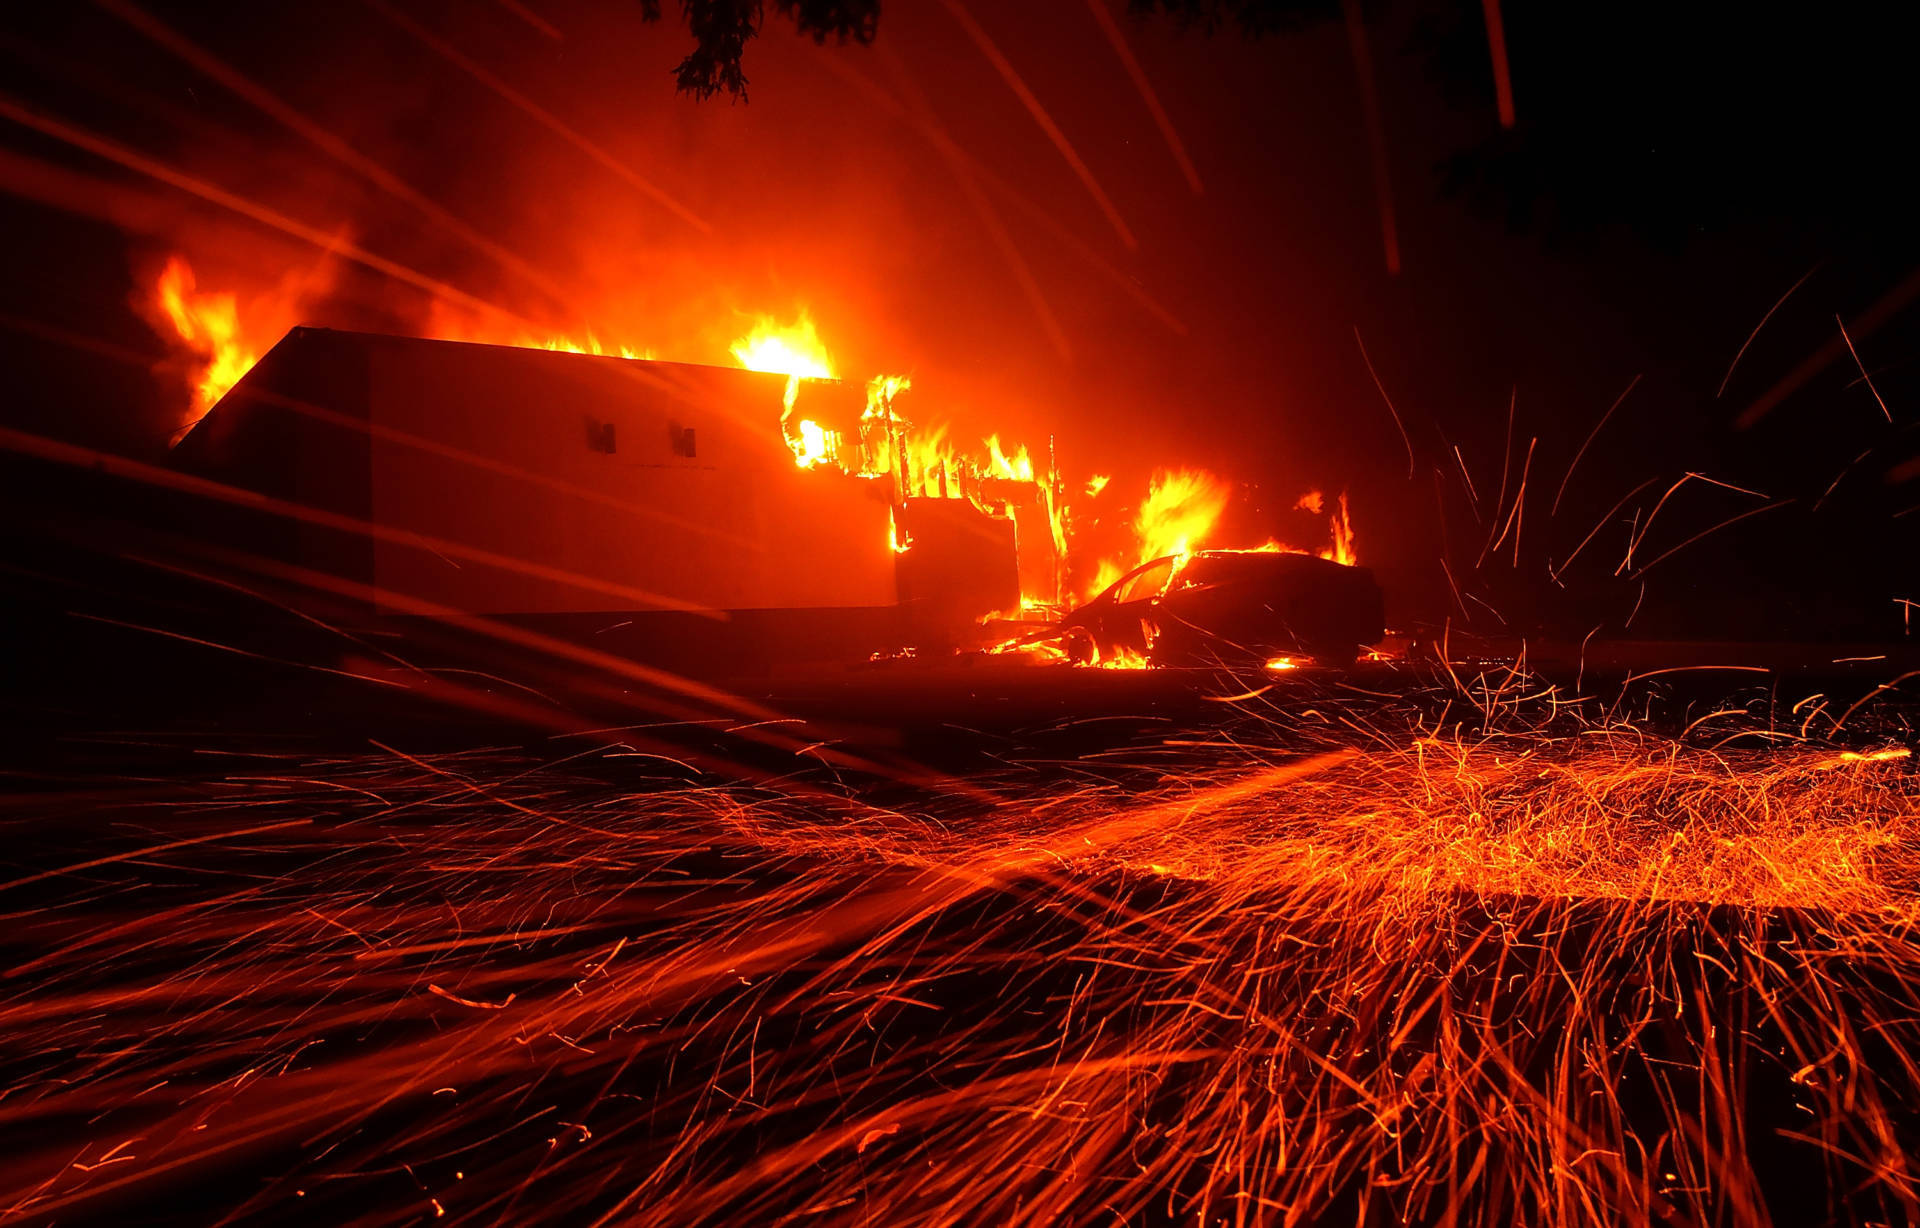 Embers blew in the wind as the Camp Fire burned a KFC restaurant Thursday night in the Butte County town of Paradise. Justin Sullivan/Getty Images